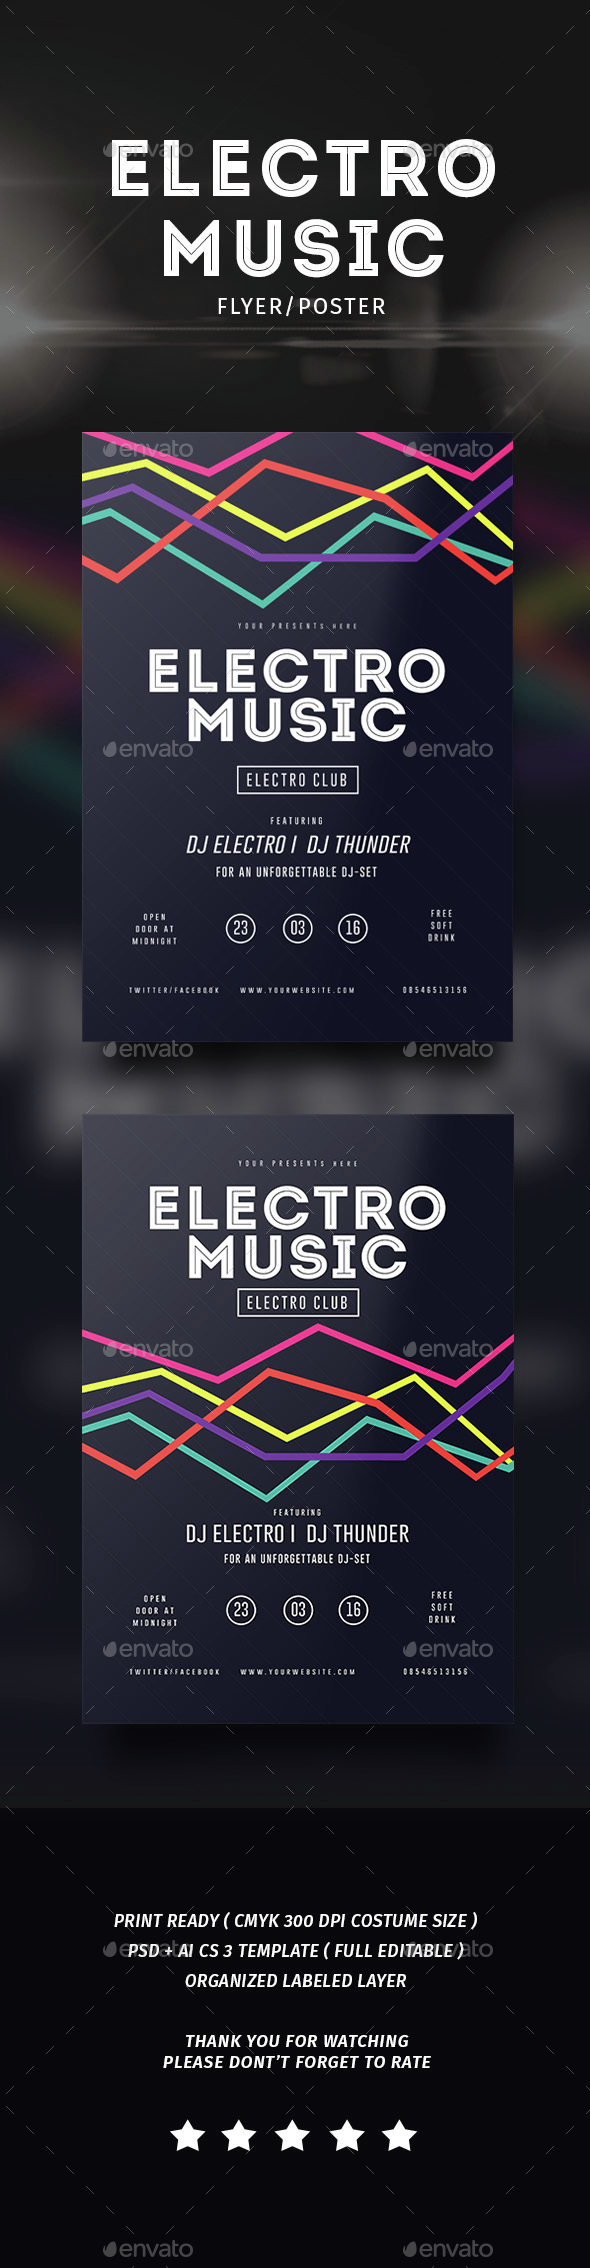 Electro Musik Flyer & Poster - Events Flyers